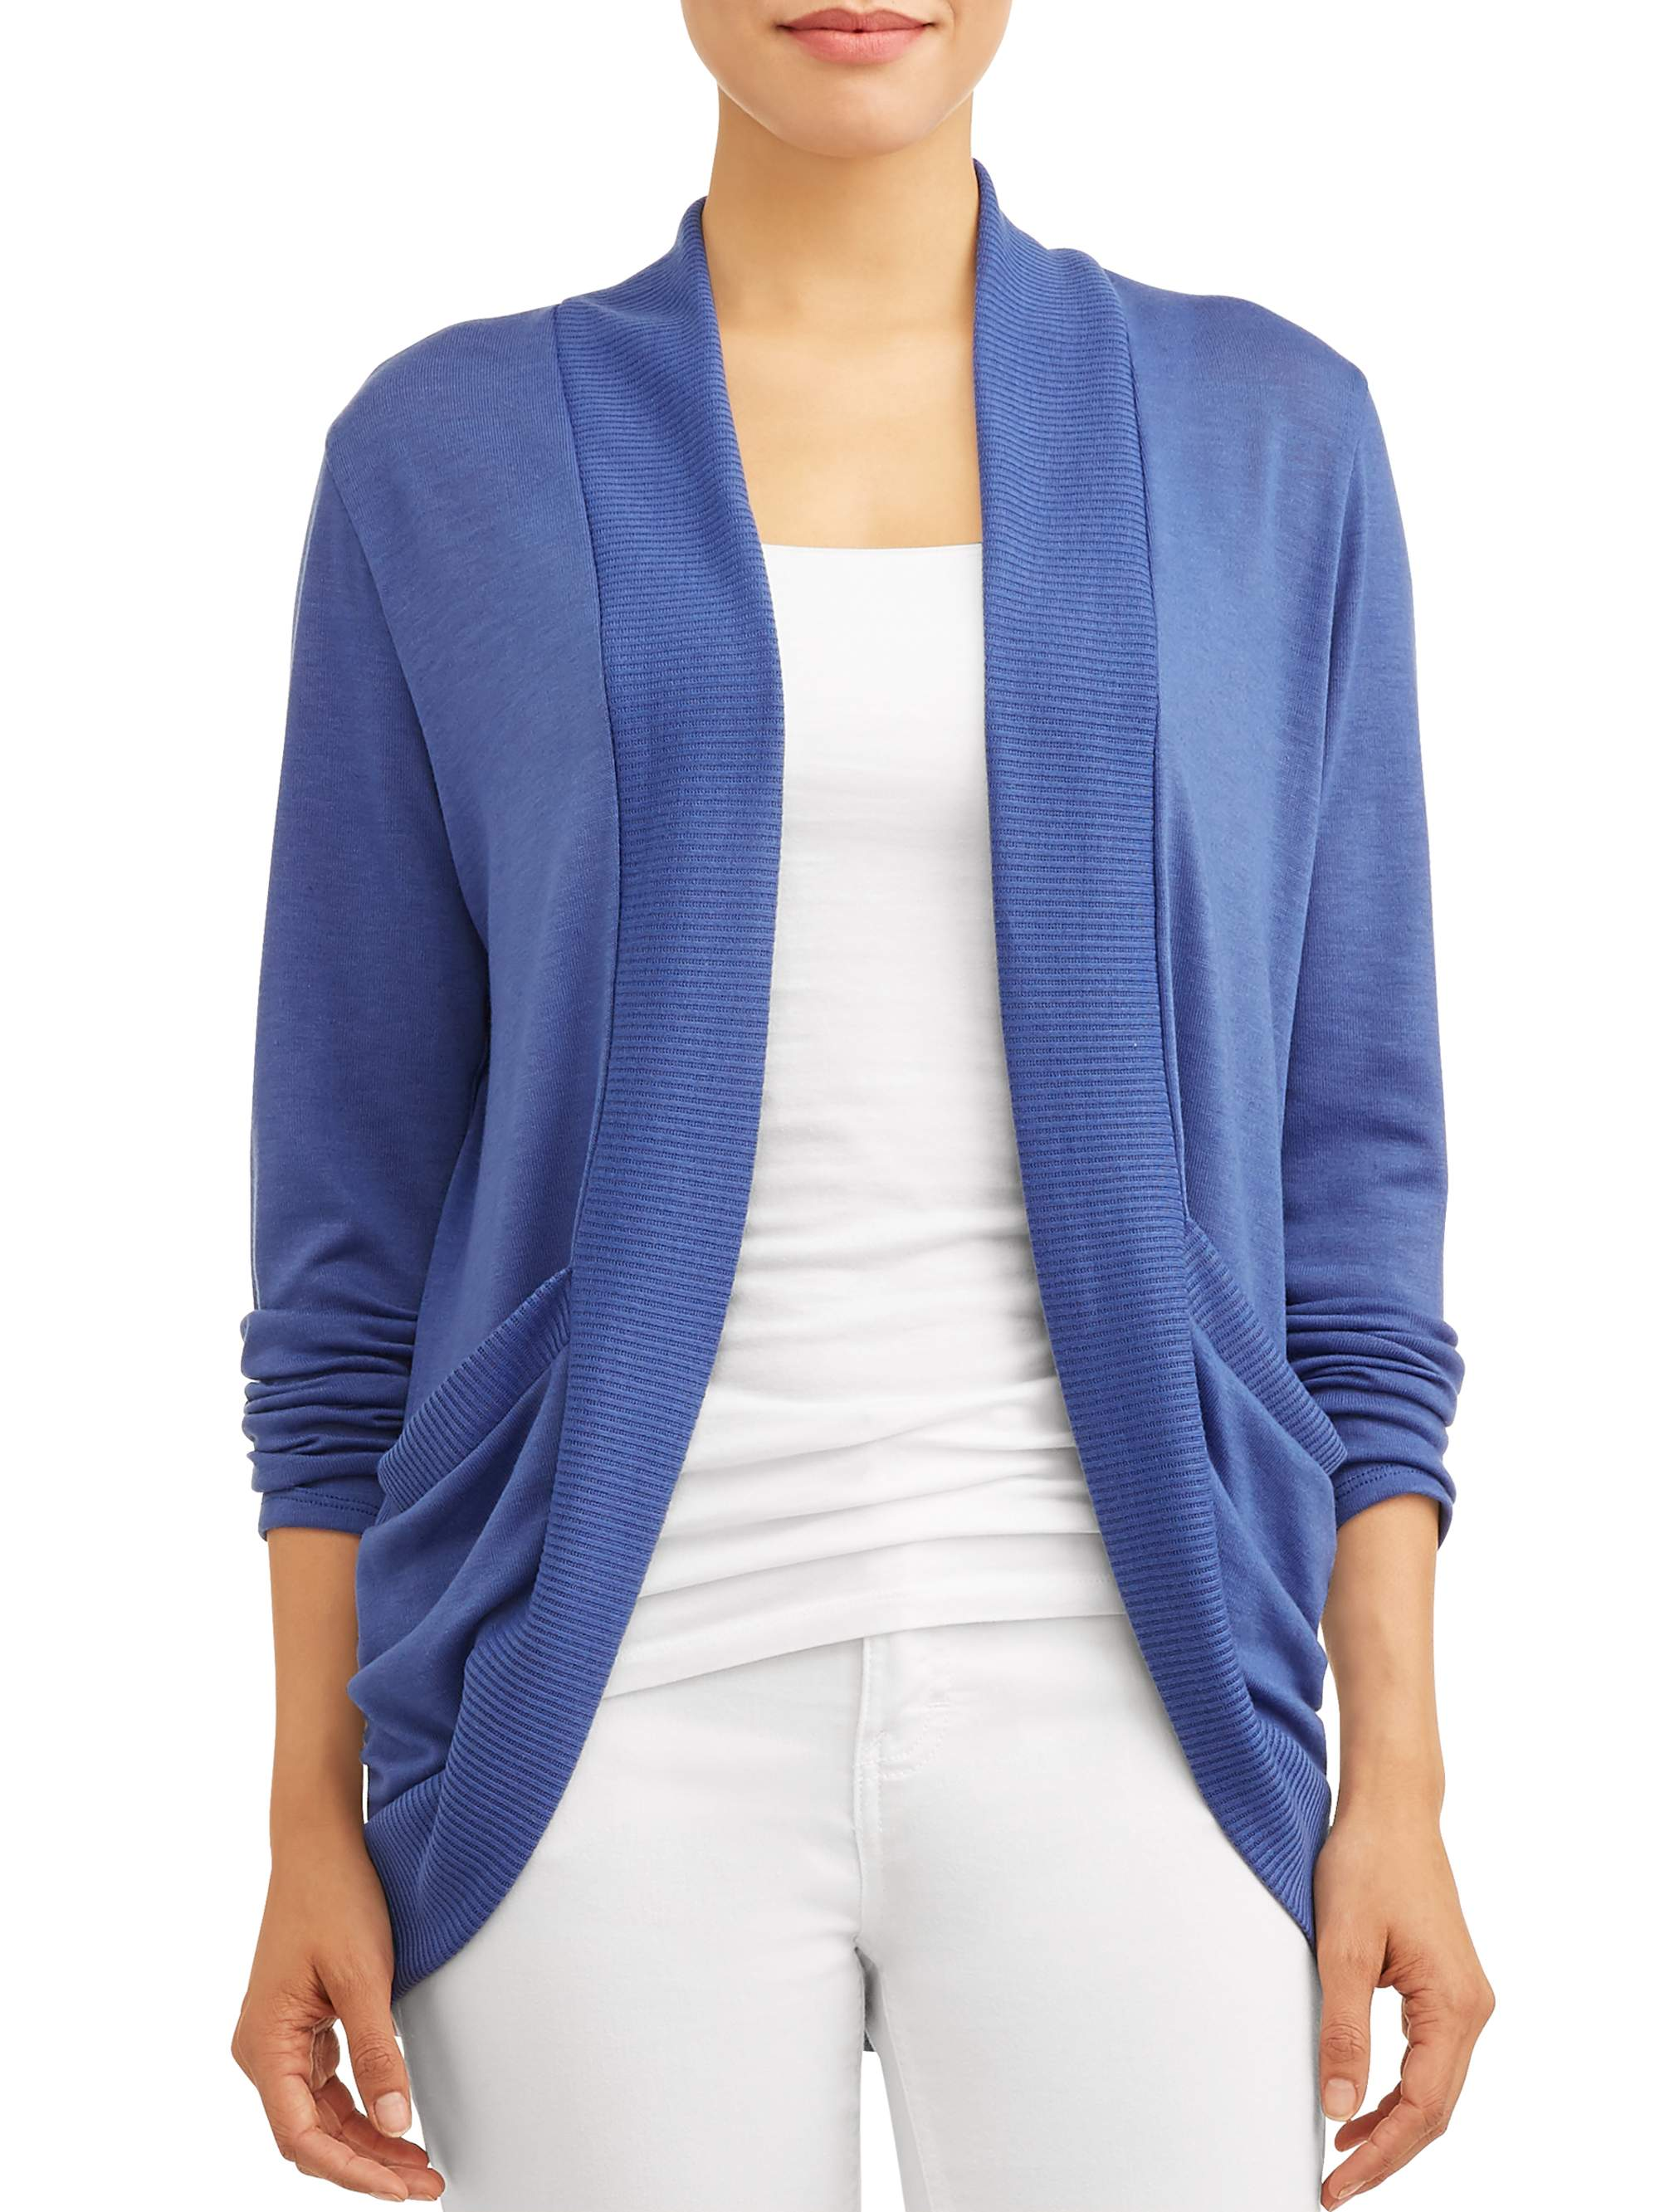 Women's Lightweight Open Cardigan